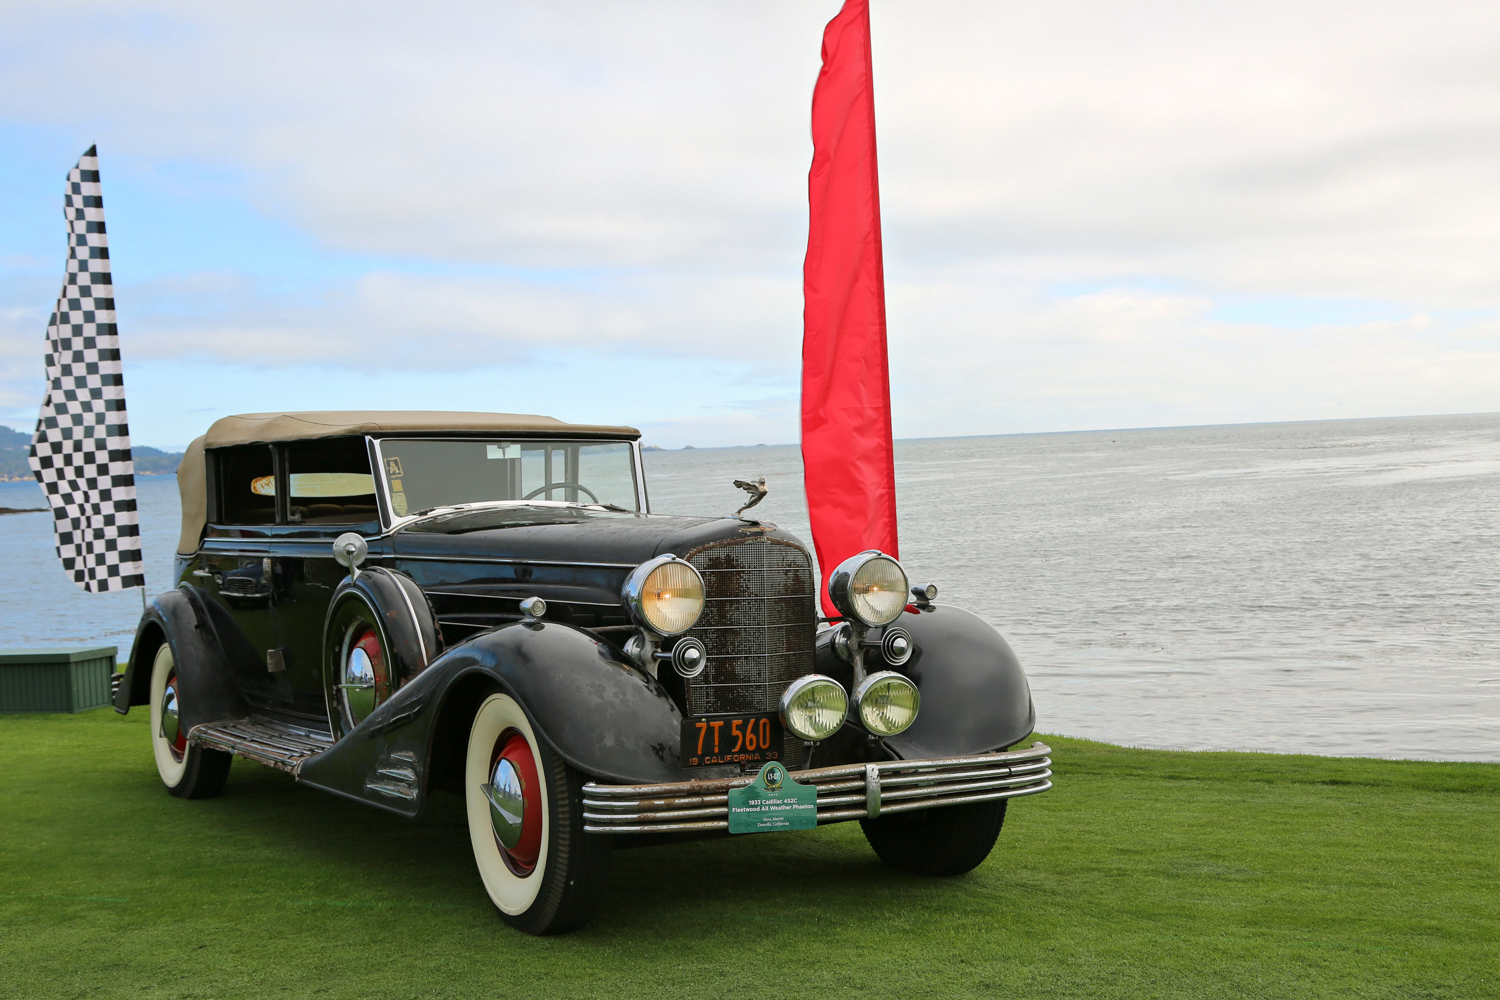 1933 Cadillac V-16 All Weather Phaeton. Steve Marini